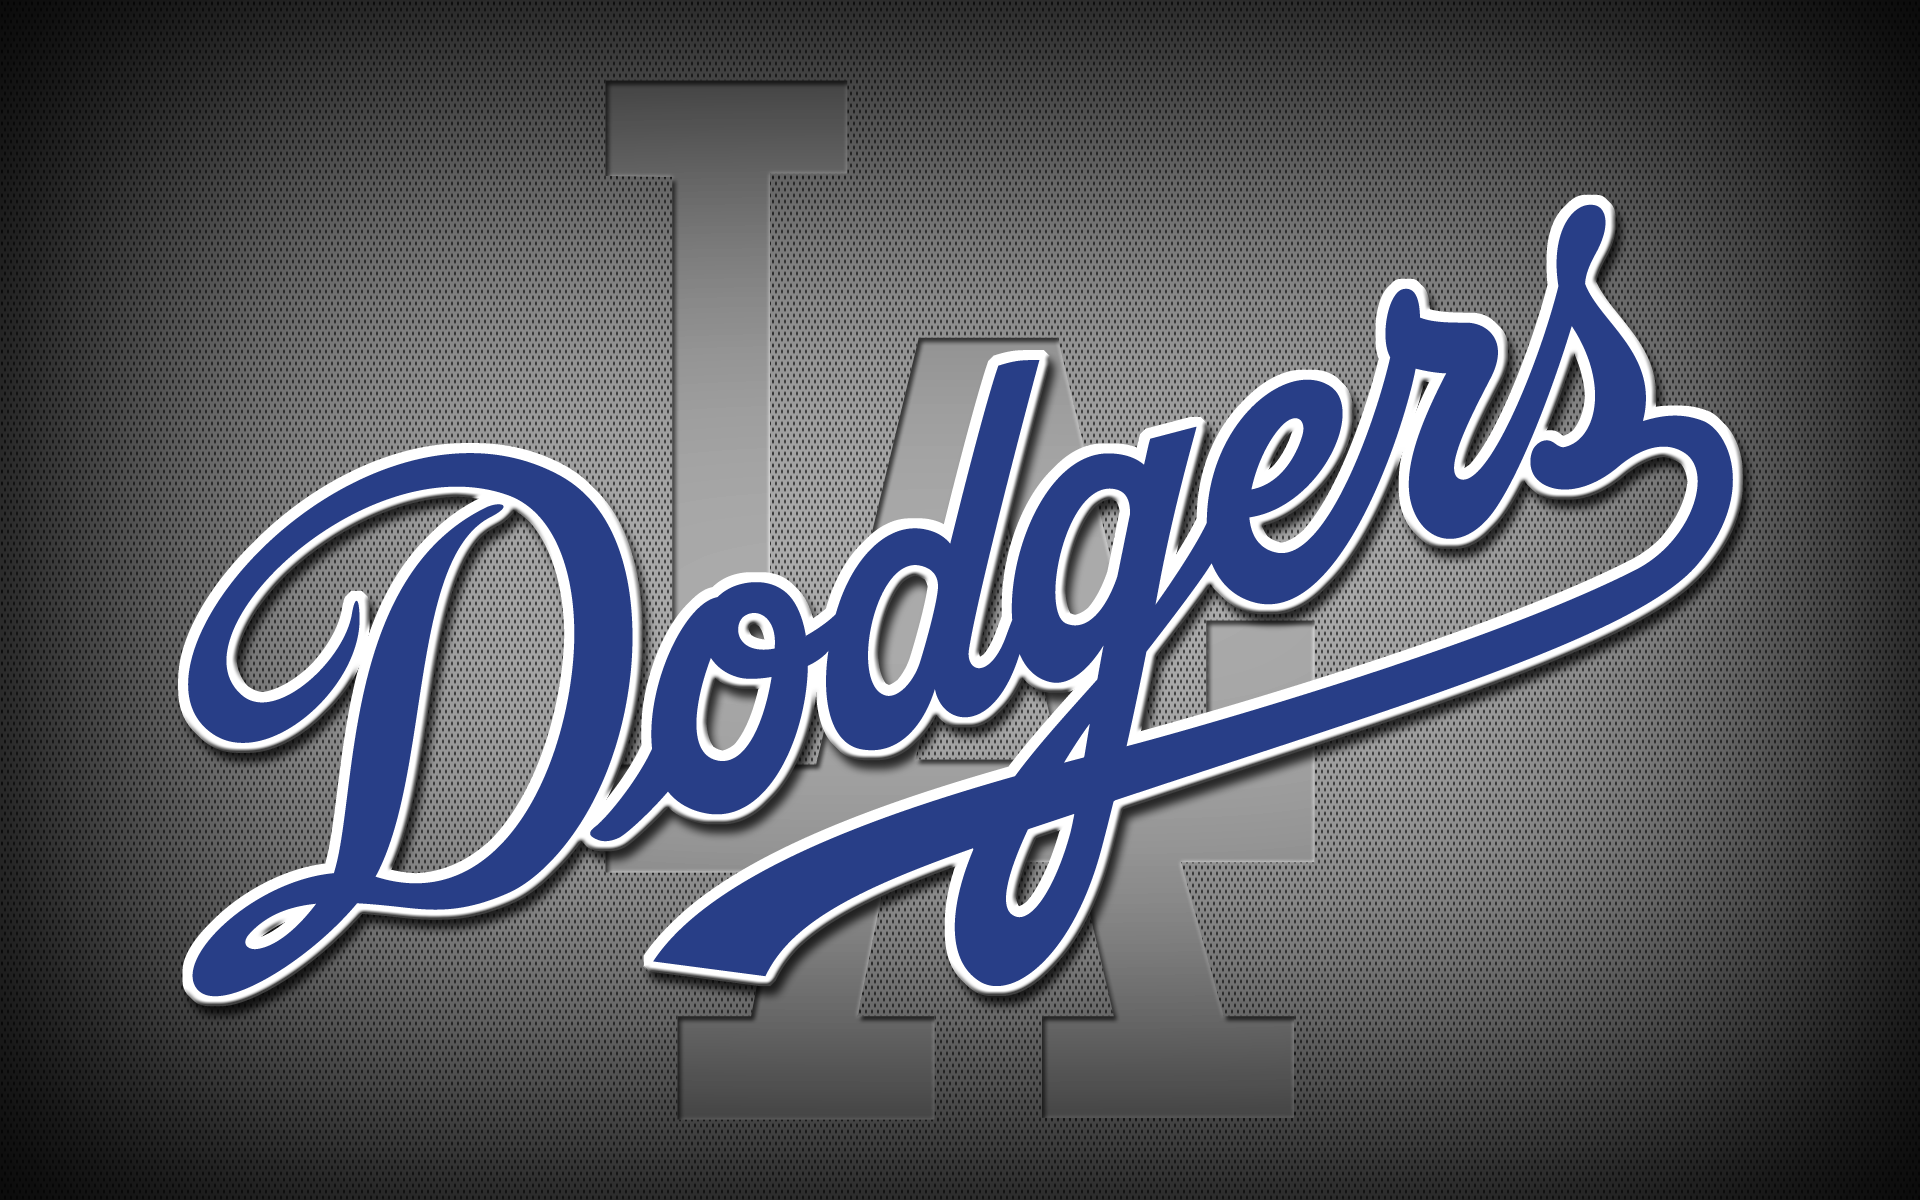 1a8b952e7a2 Buy Los Angeles Dodgers Tickets Today